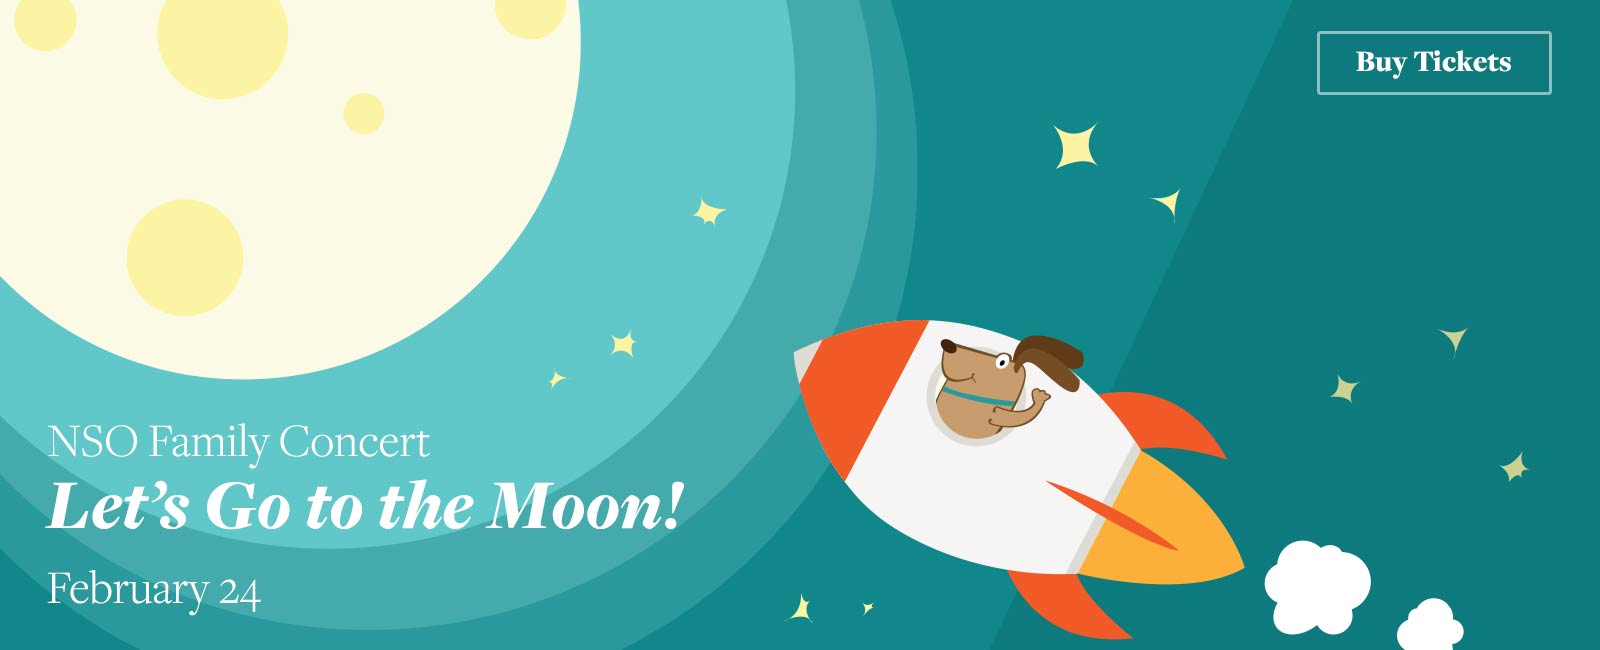 NSO Family Concert: Let's Go to the Moon!